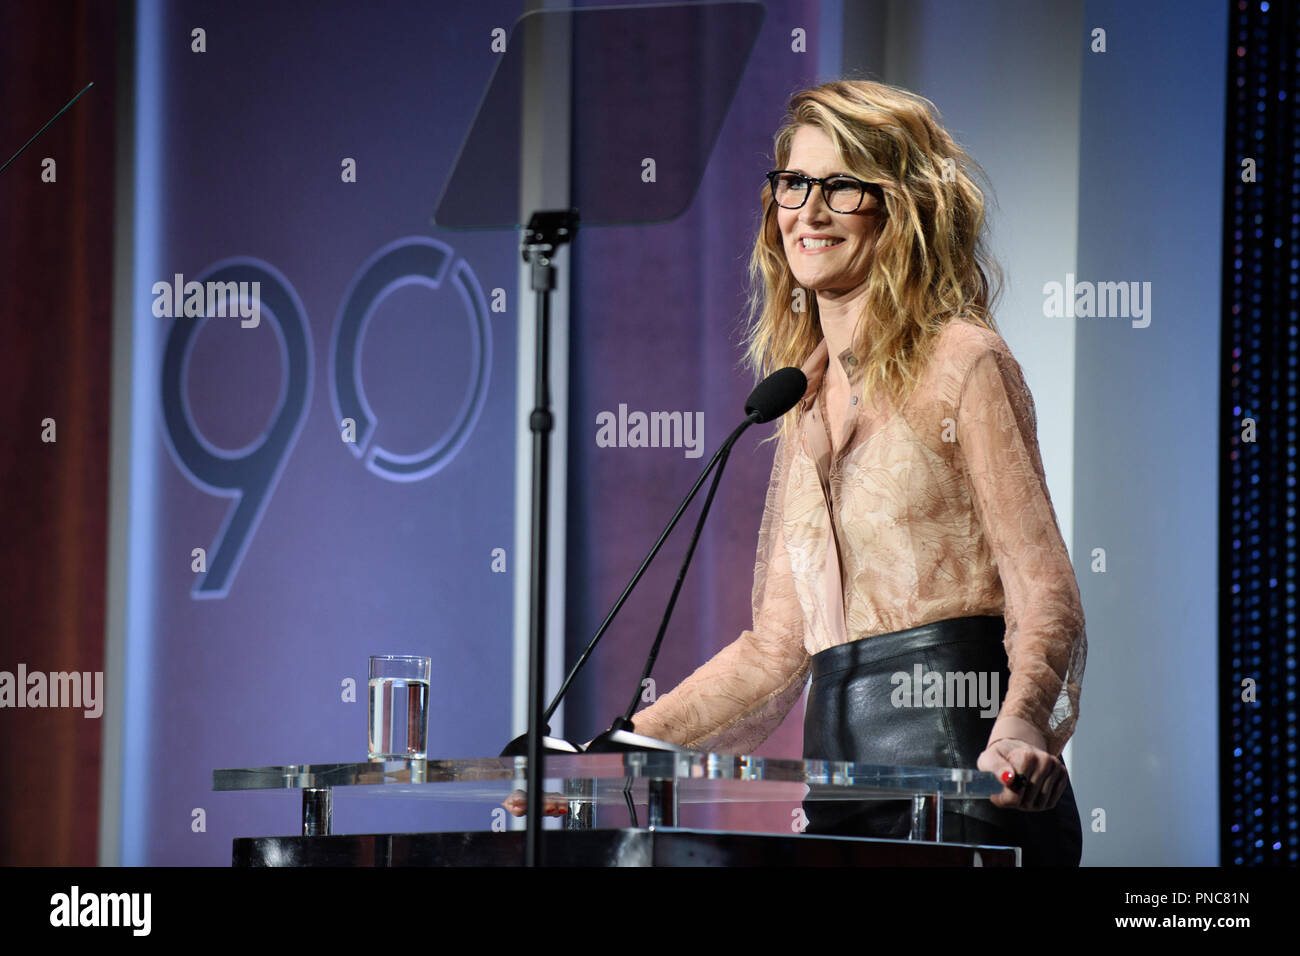 0540a1ab4238 Laura Dern during the Oscar Nominee Luncheon held at the Beverly Hilton